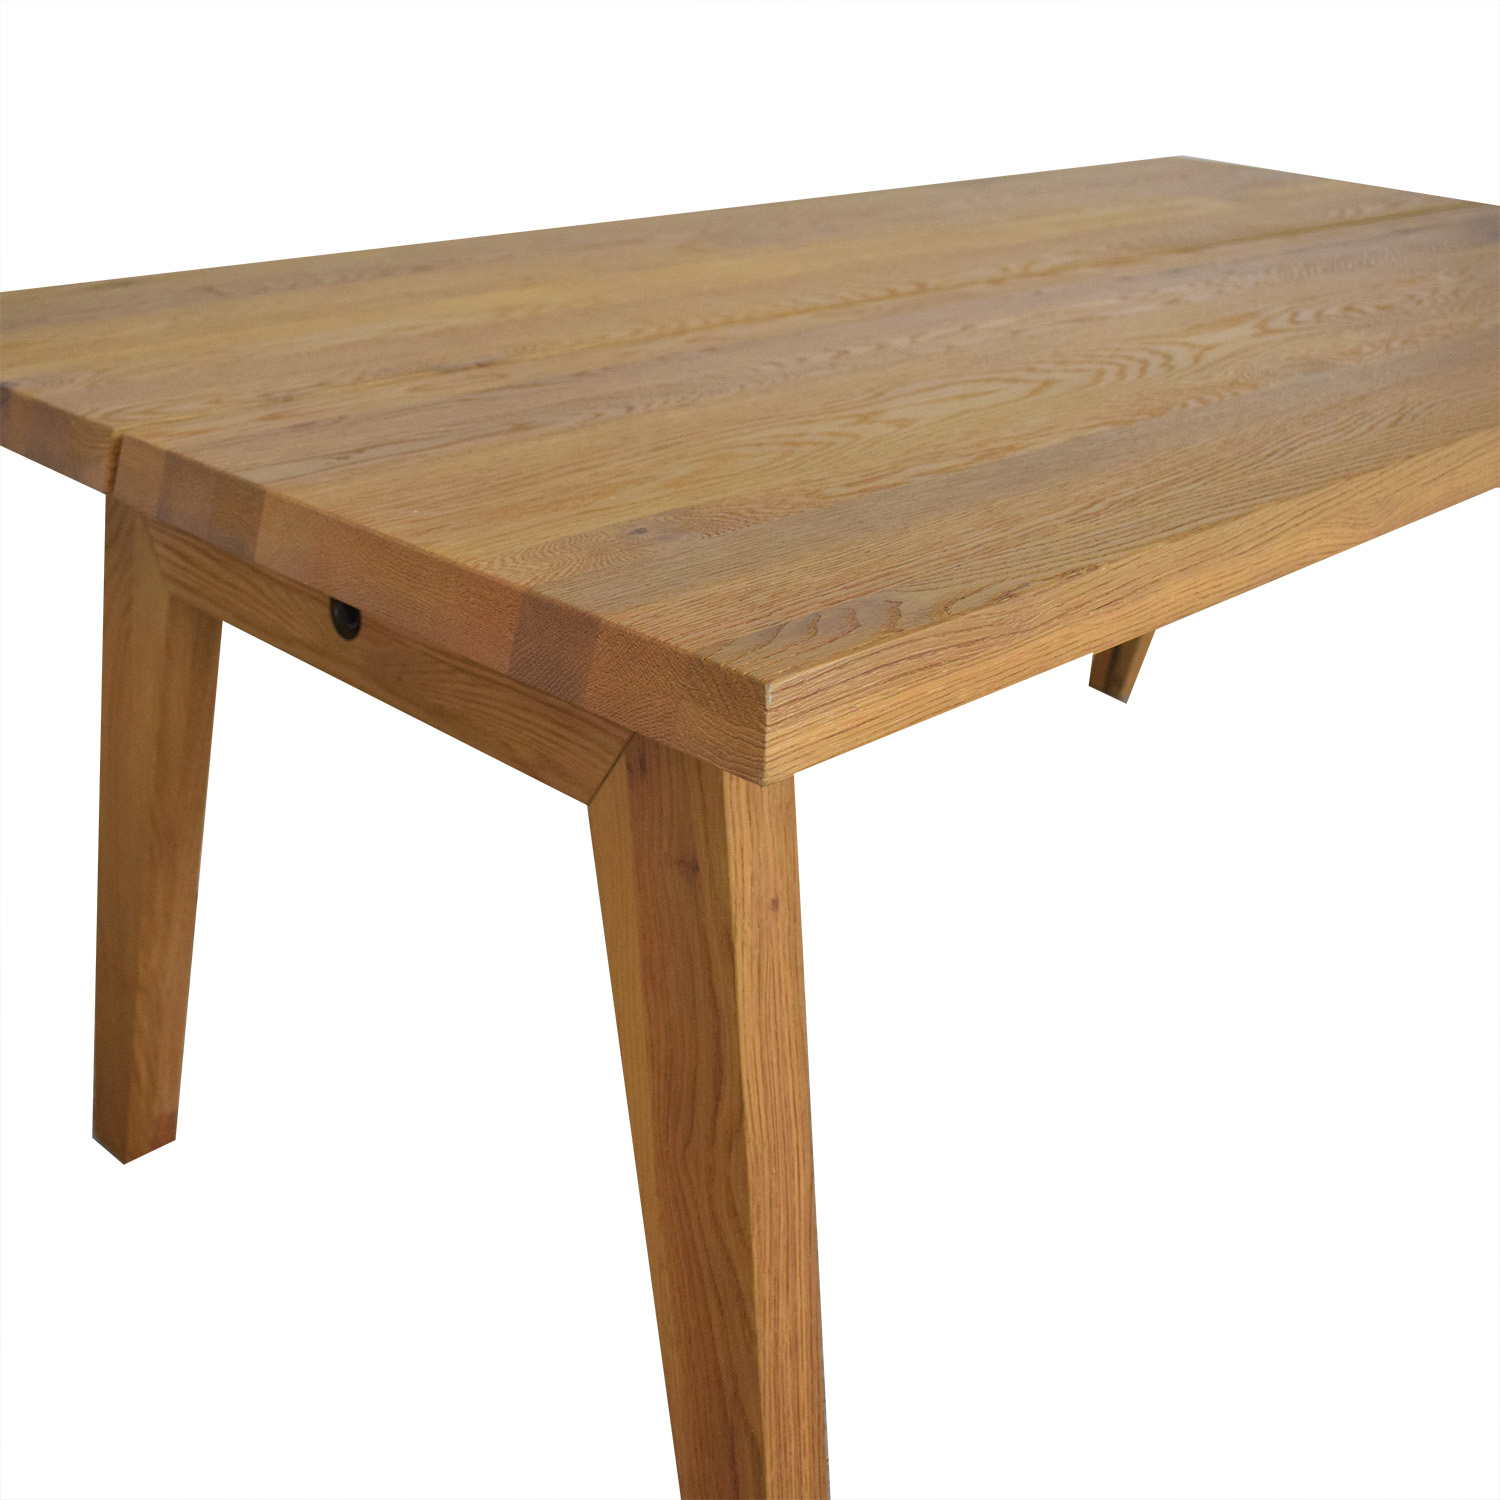 Article Article Madera Dining Table on sale